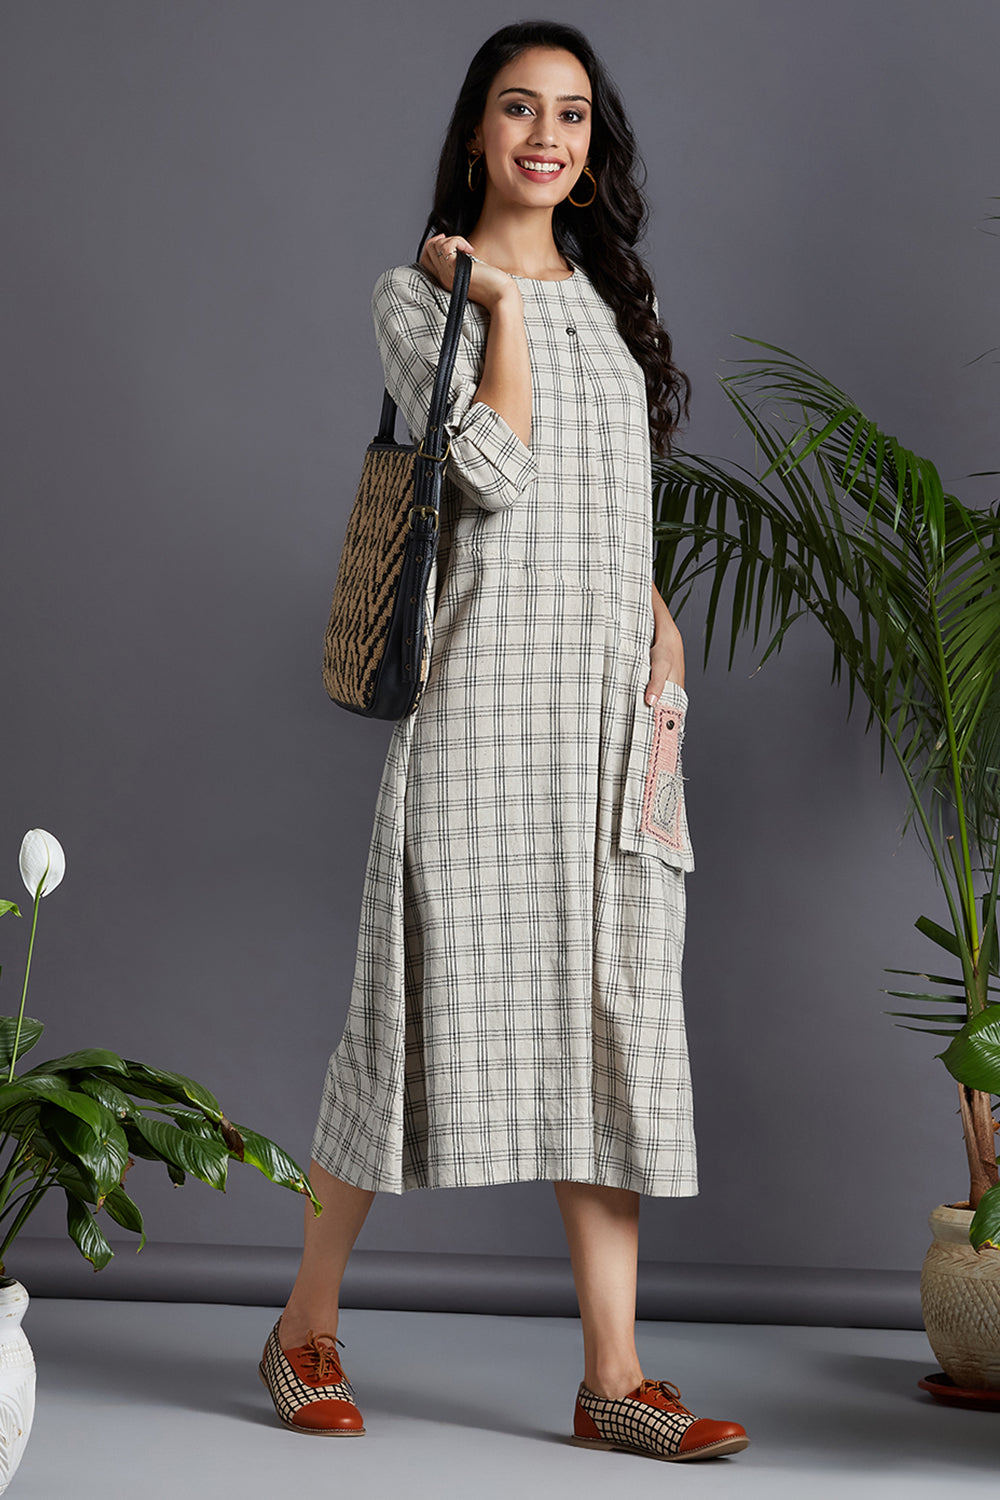 a-line dress with patch pocket - moonlight & plaid love